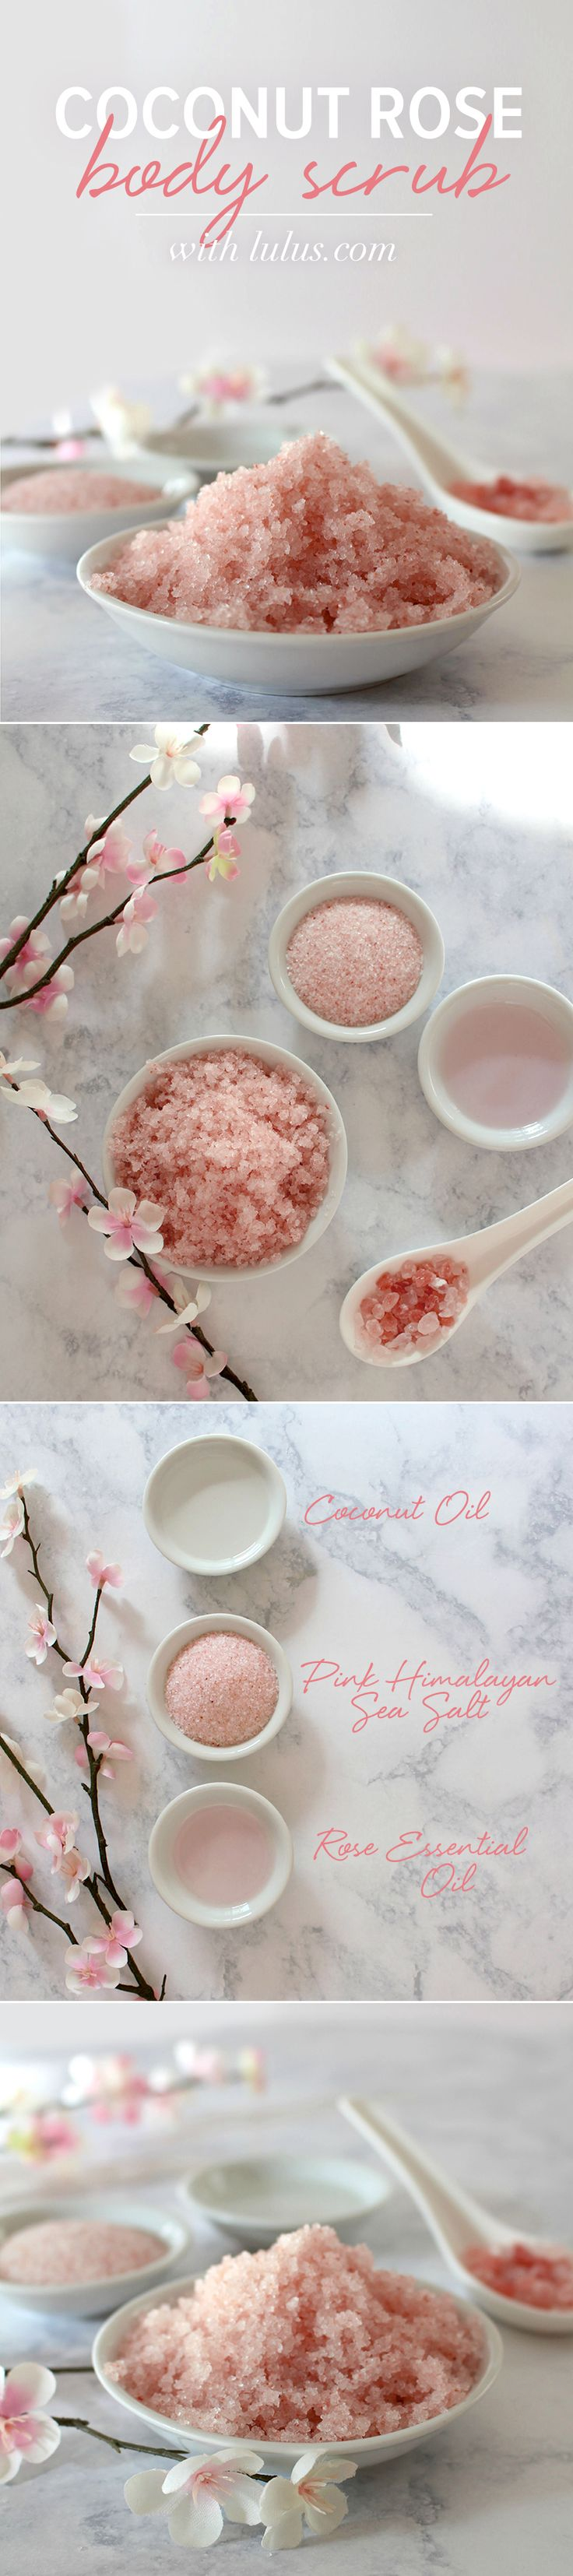 This coconut rose body scrub is the perfect gift for Mom to help her relax and feel beautiful!